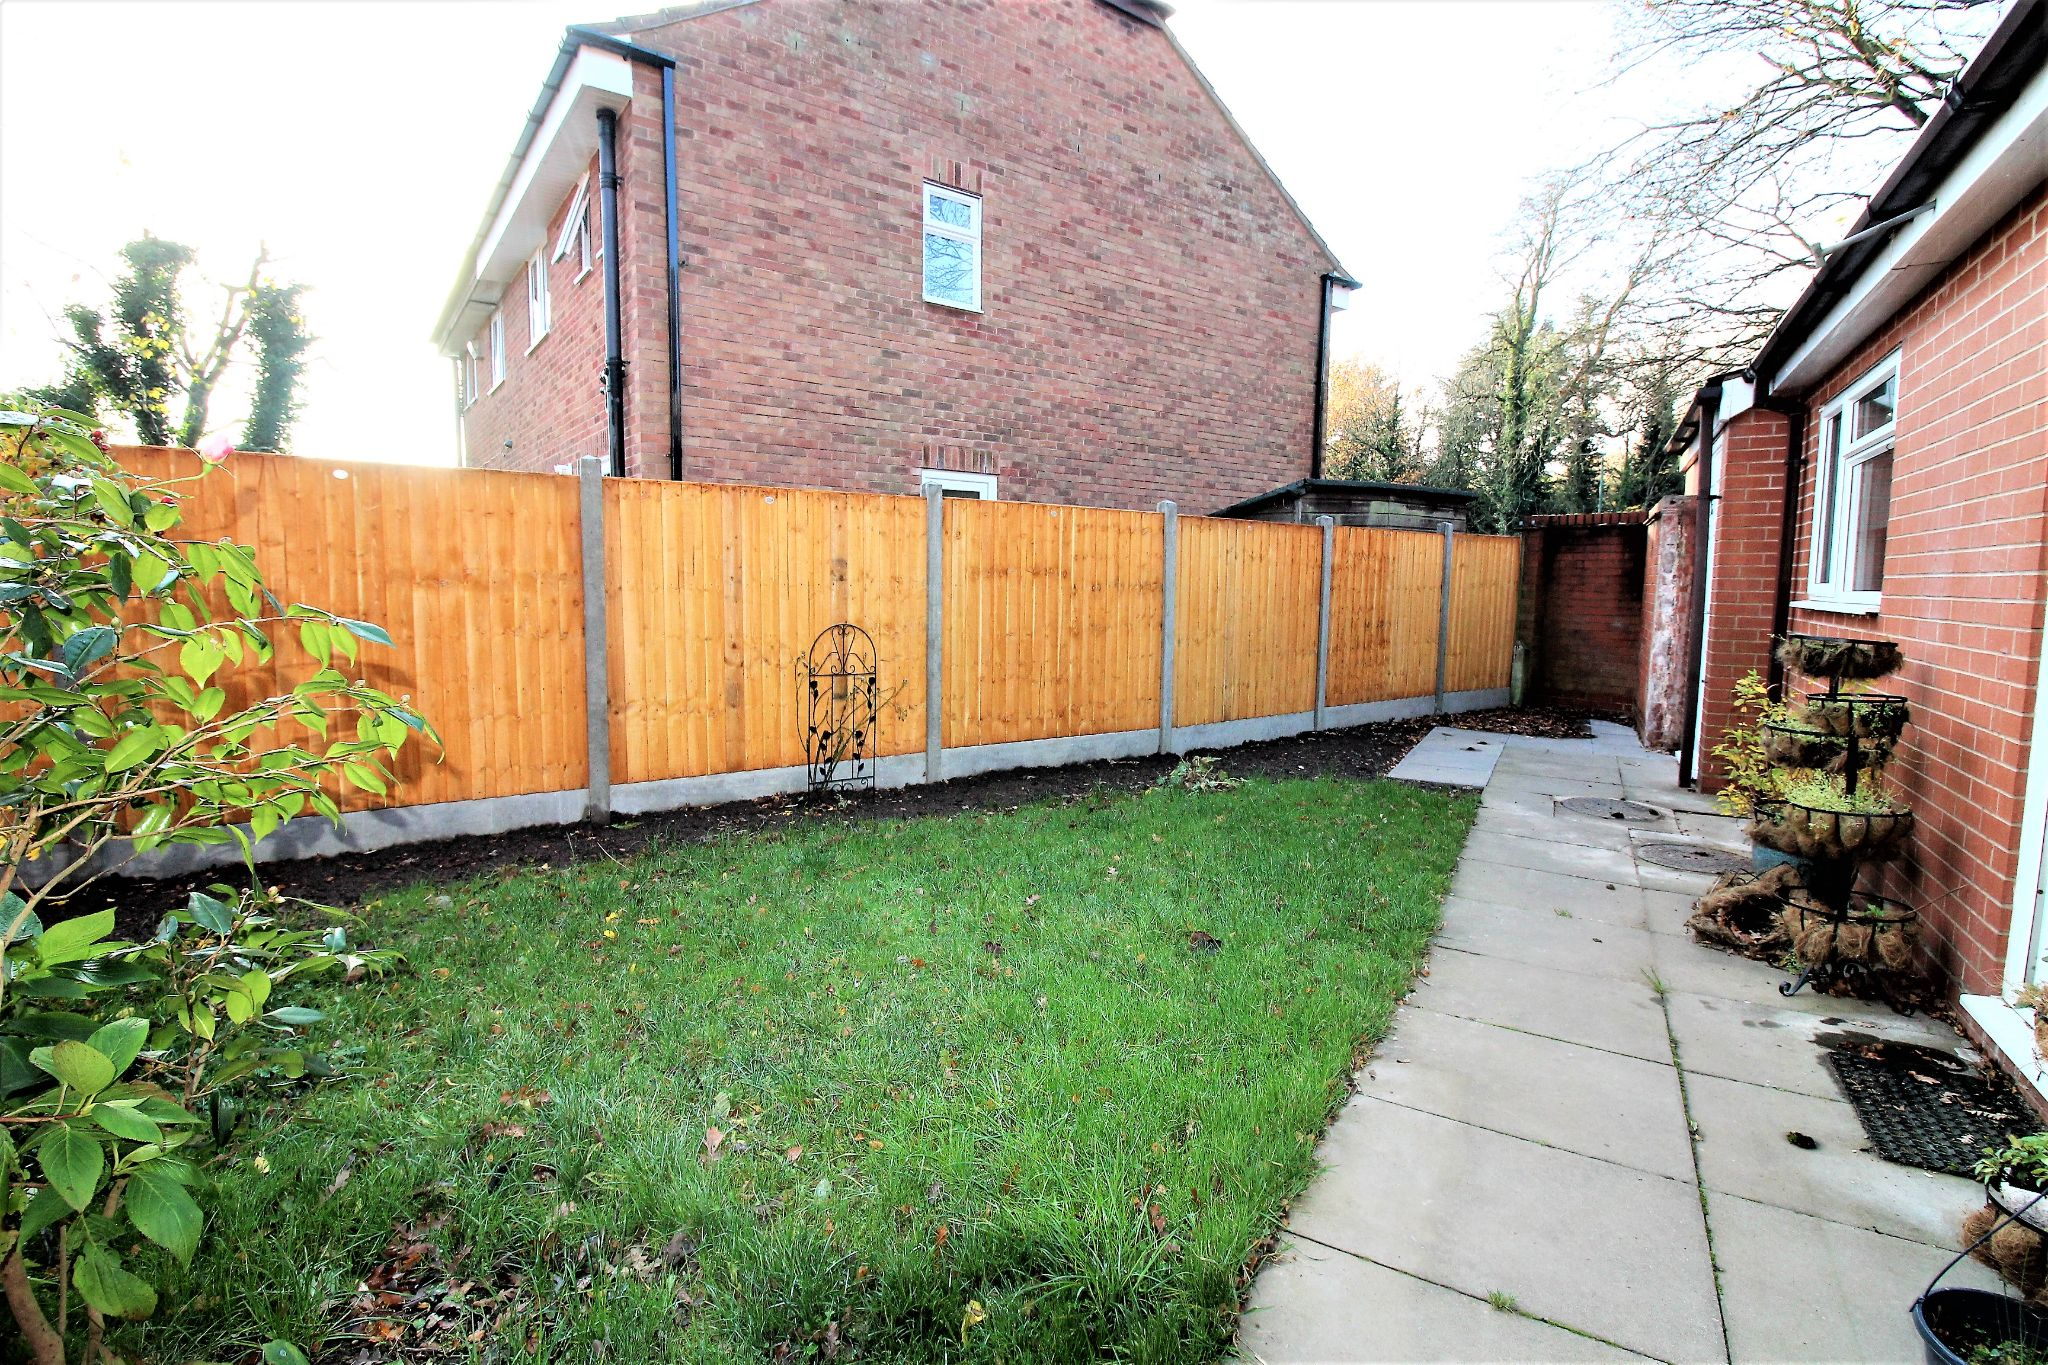 3 bedroom semi-detached house Let Agreed in Solihull - Photograph 8.